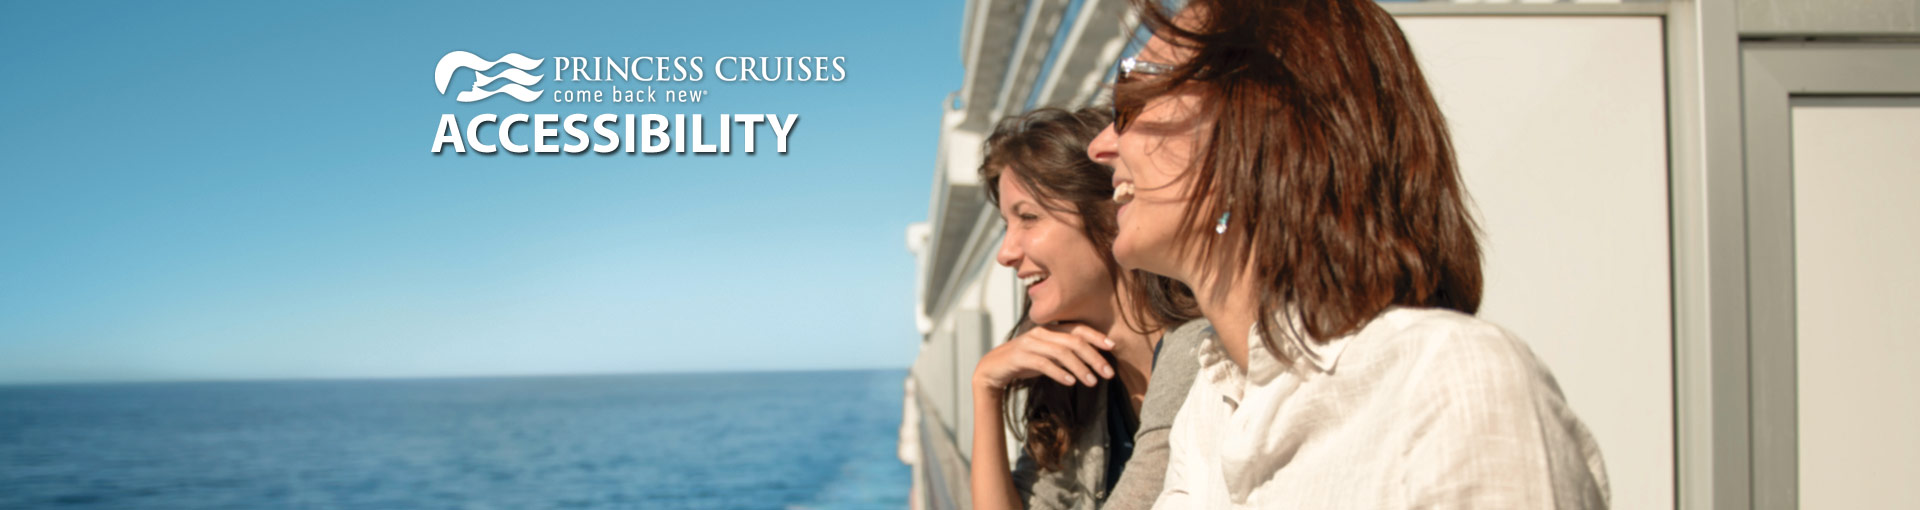 Princess Cruises Accessibility